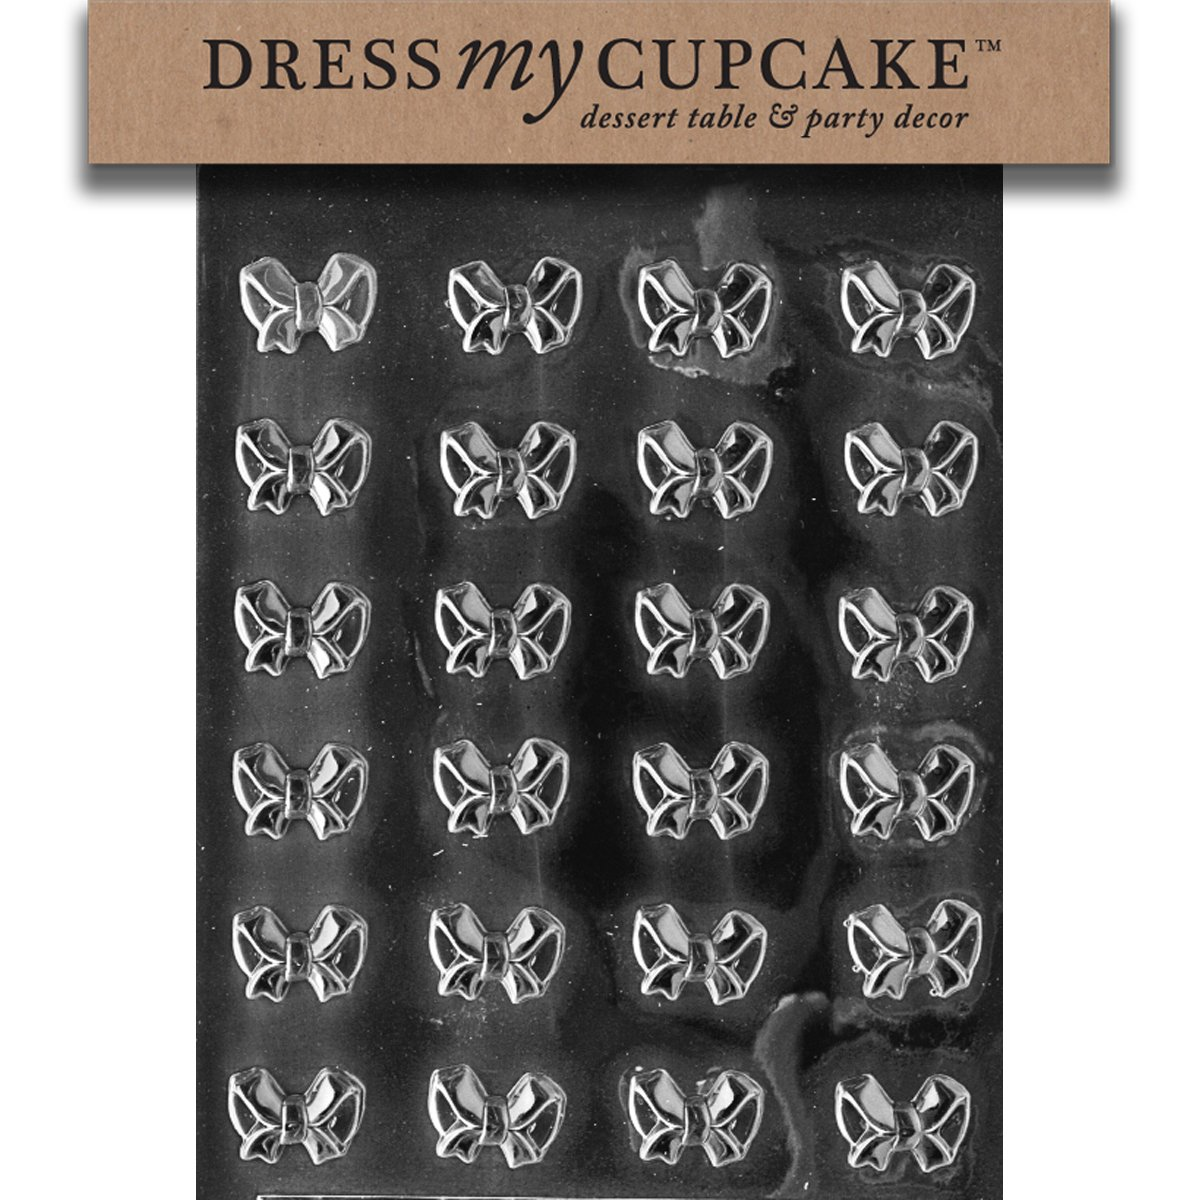 Dress My Cupcake Bite Size - Small Bows Chocolate Mold - M082 - Includes Melting & Chocolate Molding Instructions